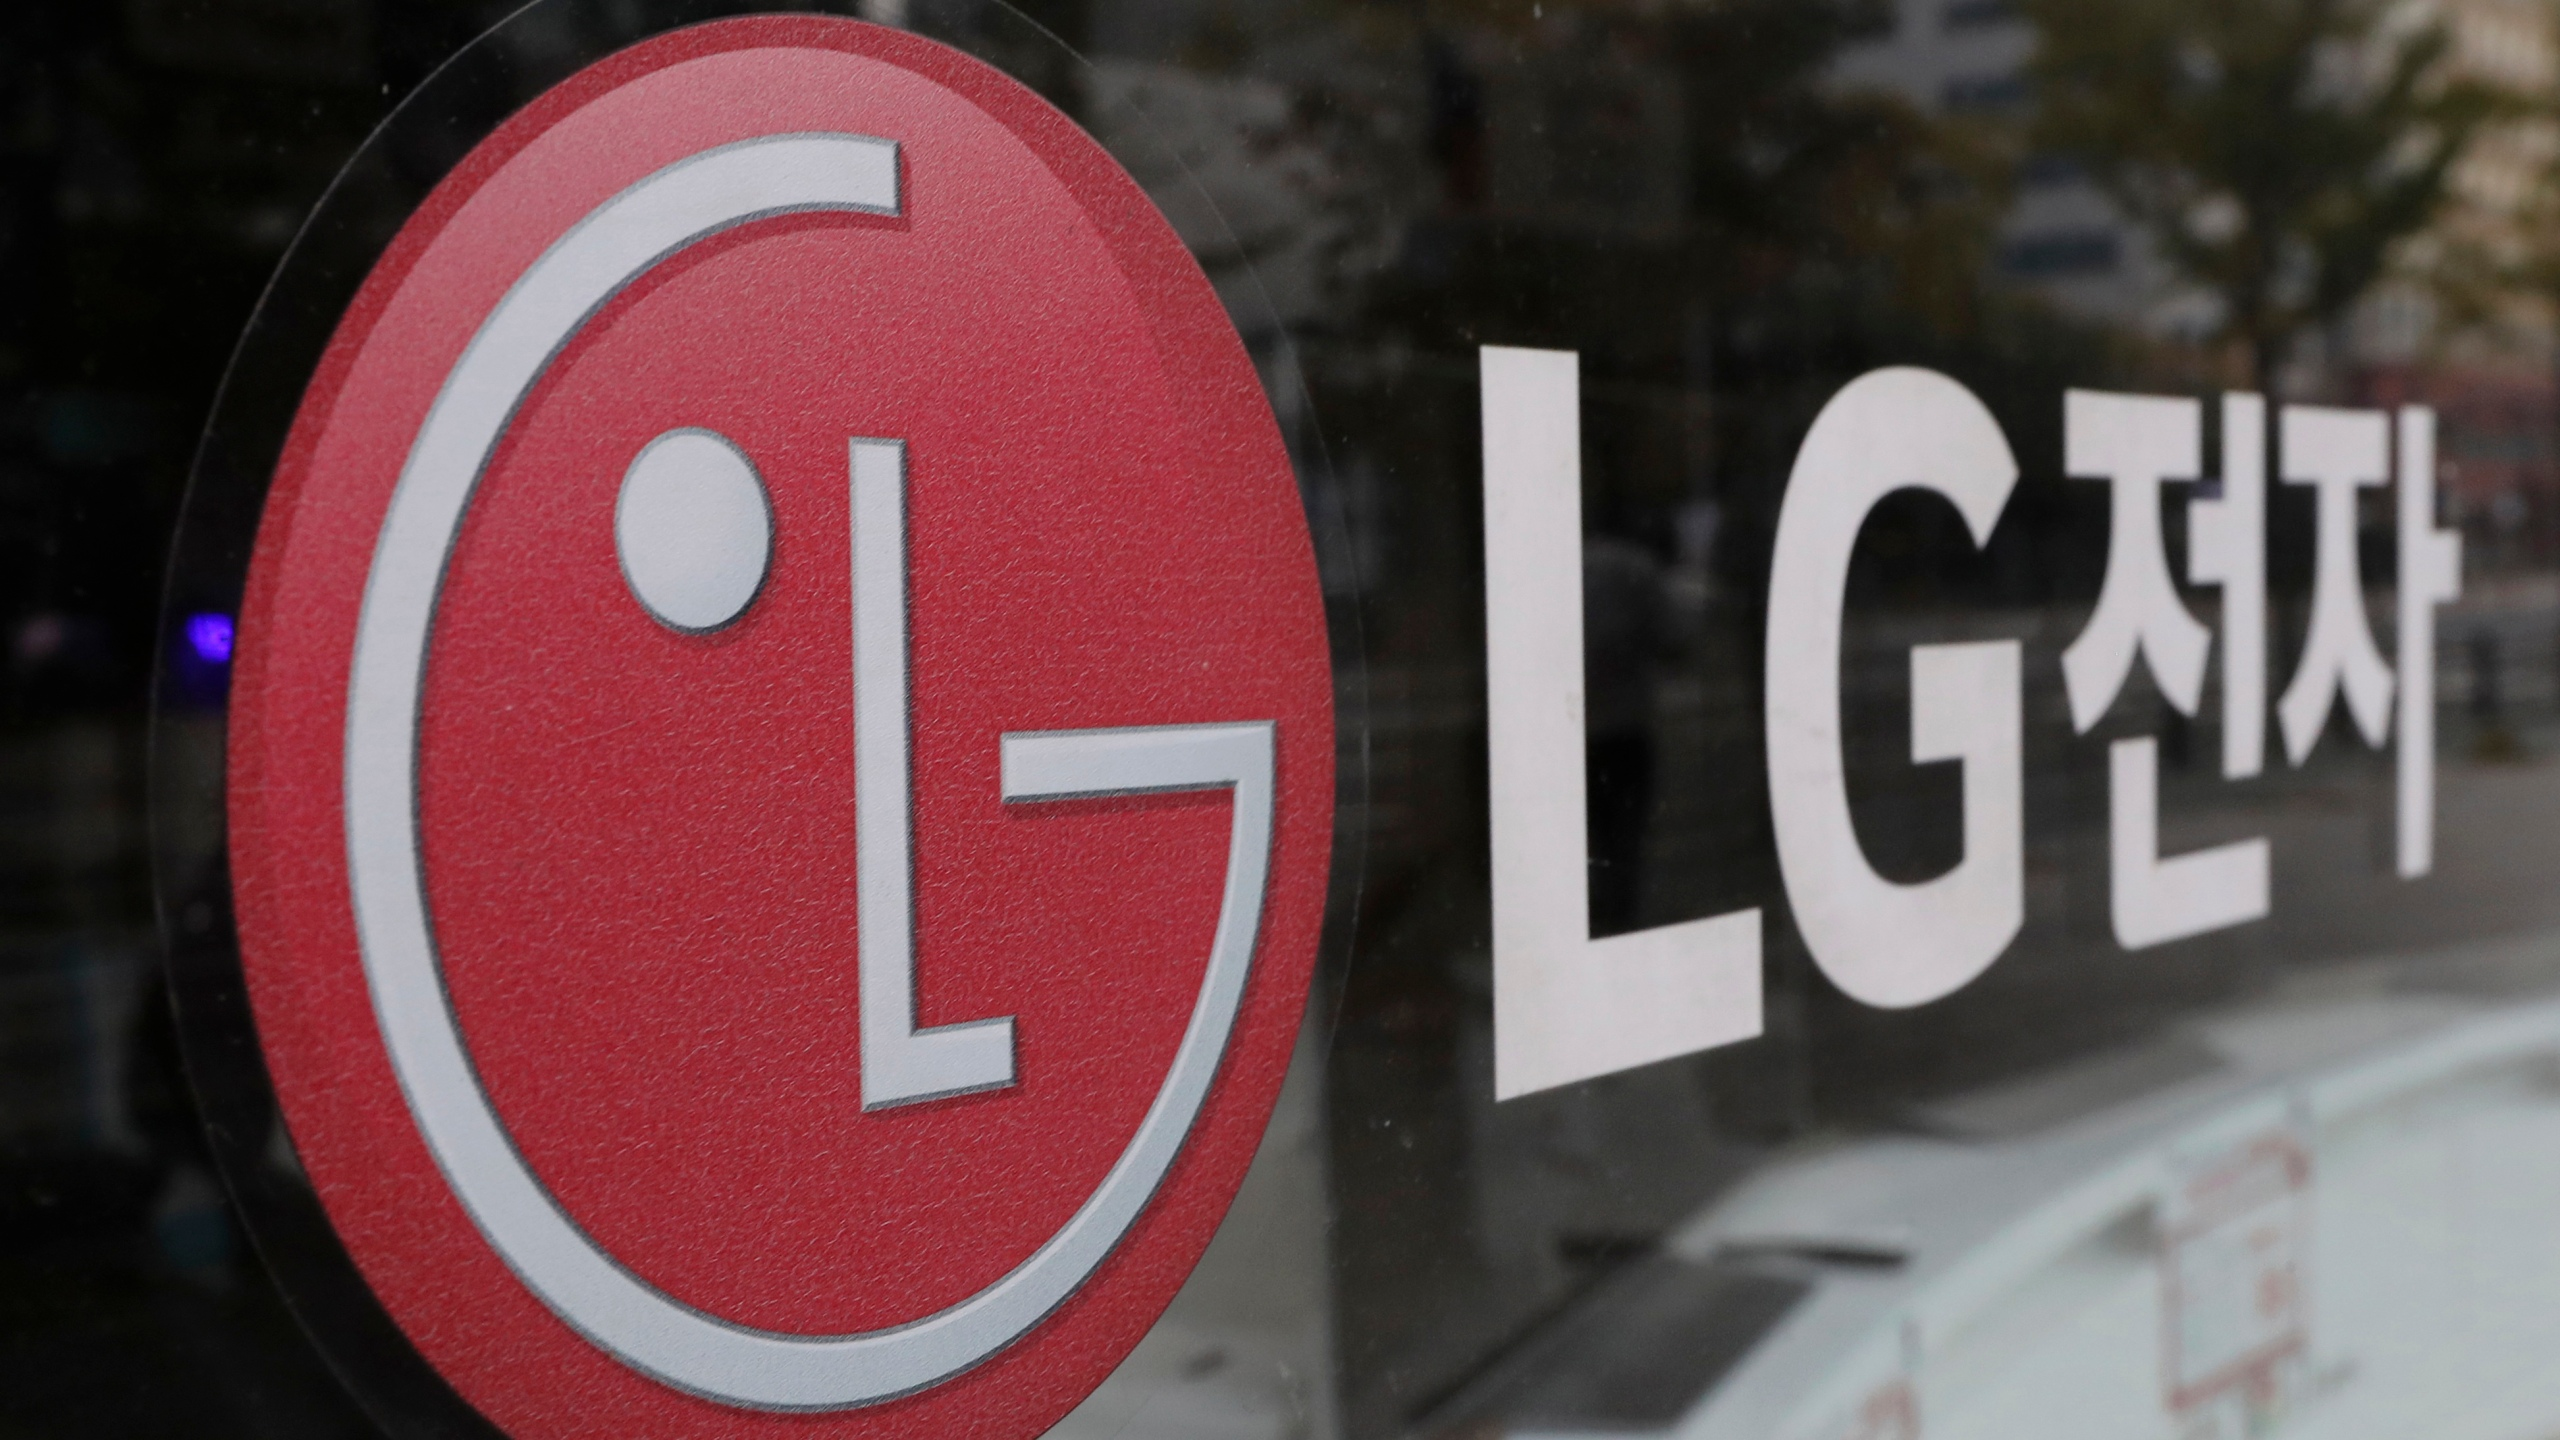 This Oct. 26, 2017 file photo shows the corporate logo of LG Electronics in Goyang, South Korea. (AP Photo/Lee Jin-man, File)